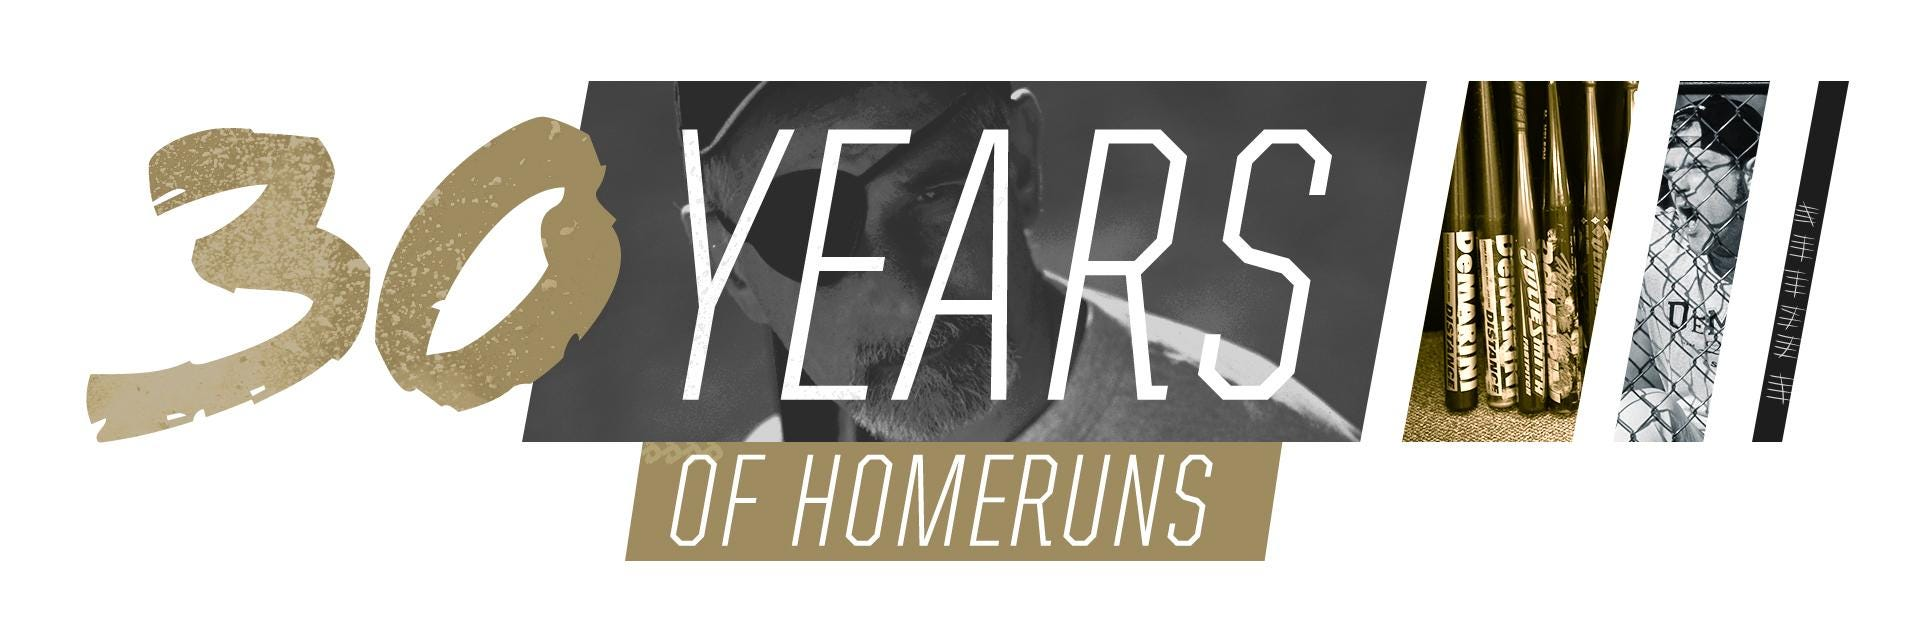 30 years of homeruns with DeMarini Bats